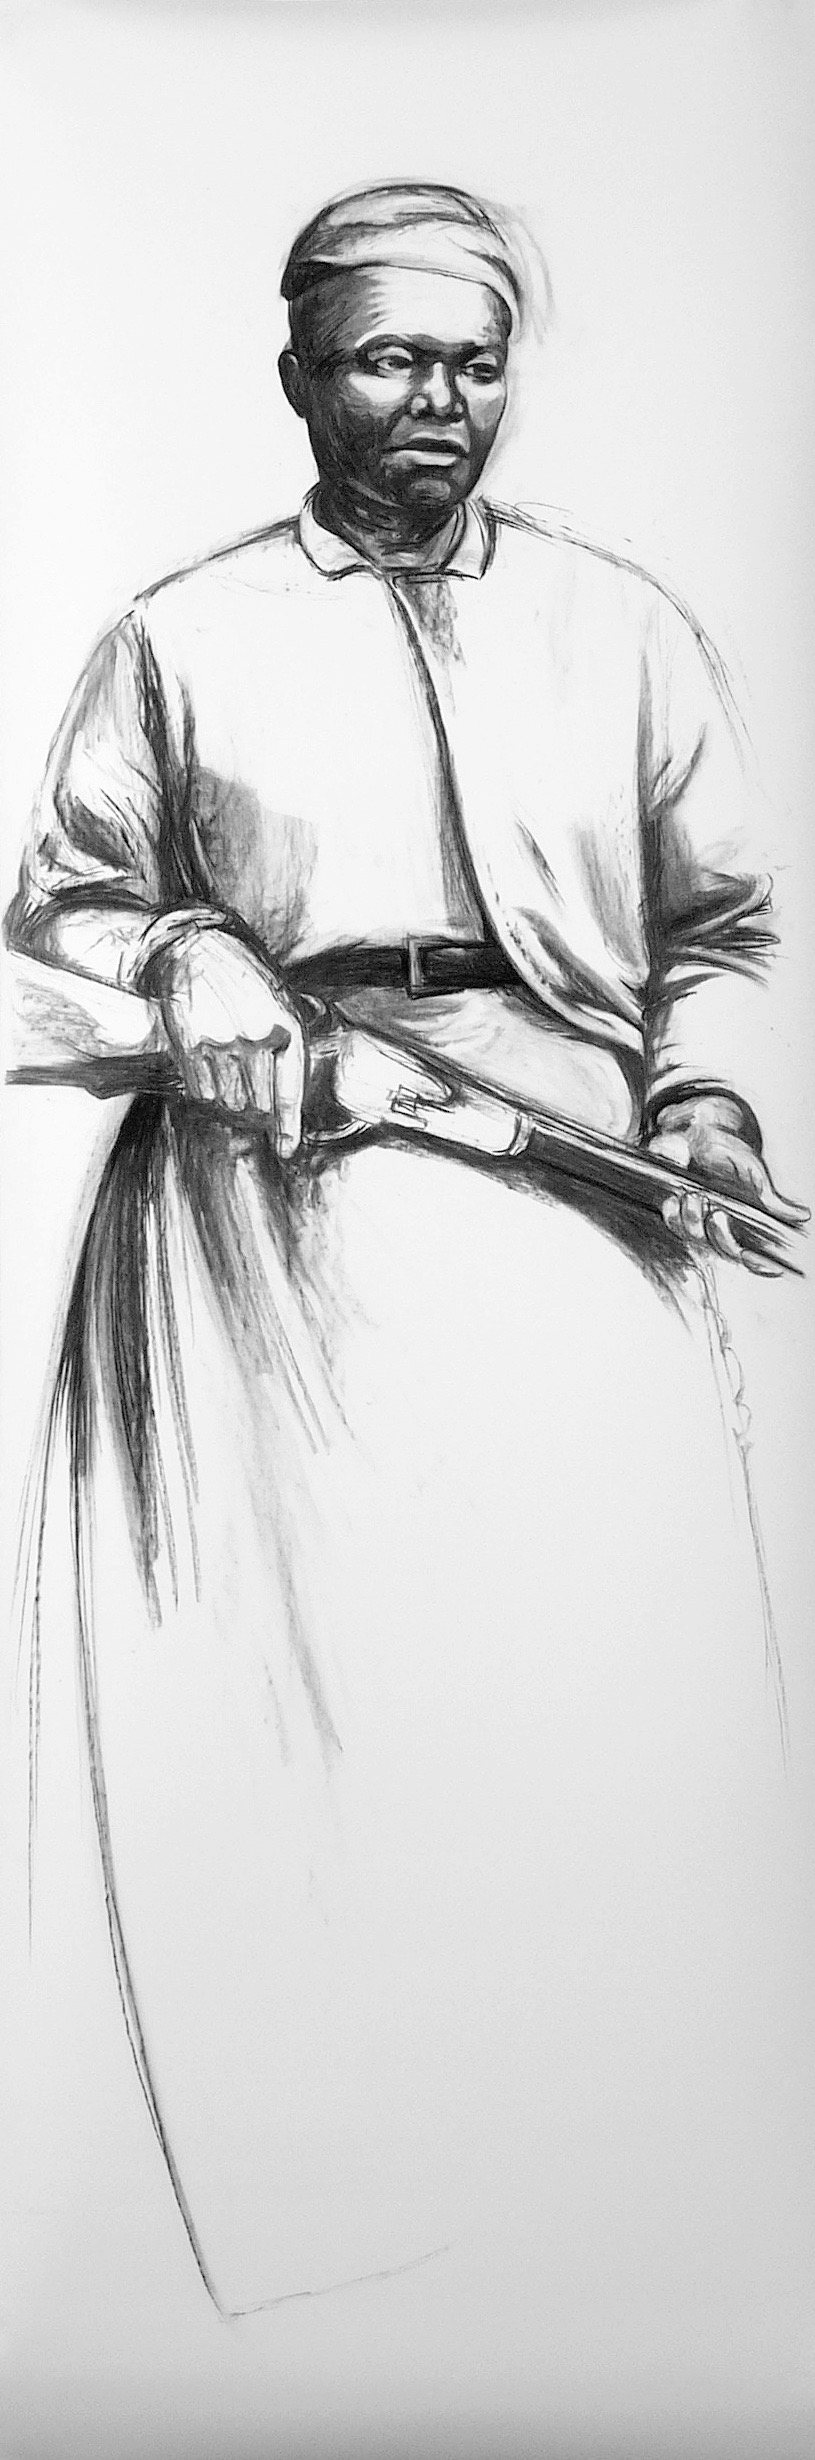 mary fields, 2005  Vine charcoal on paper  92 x 31 inches